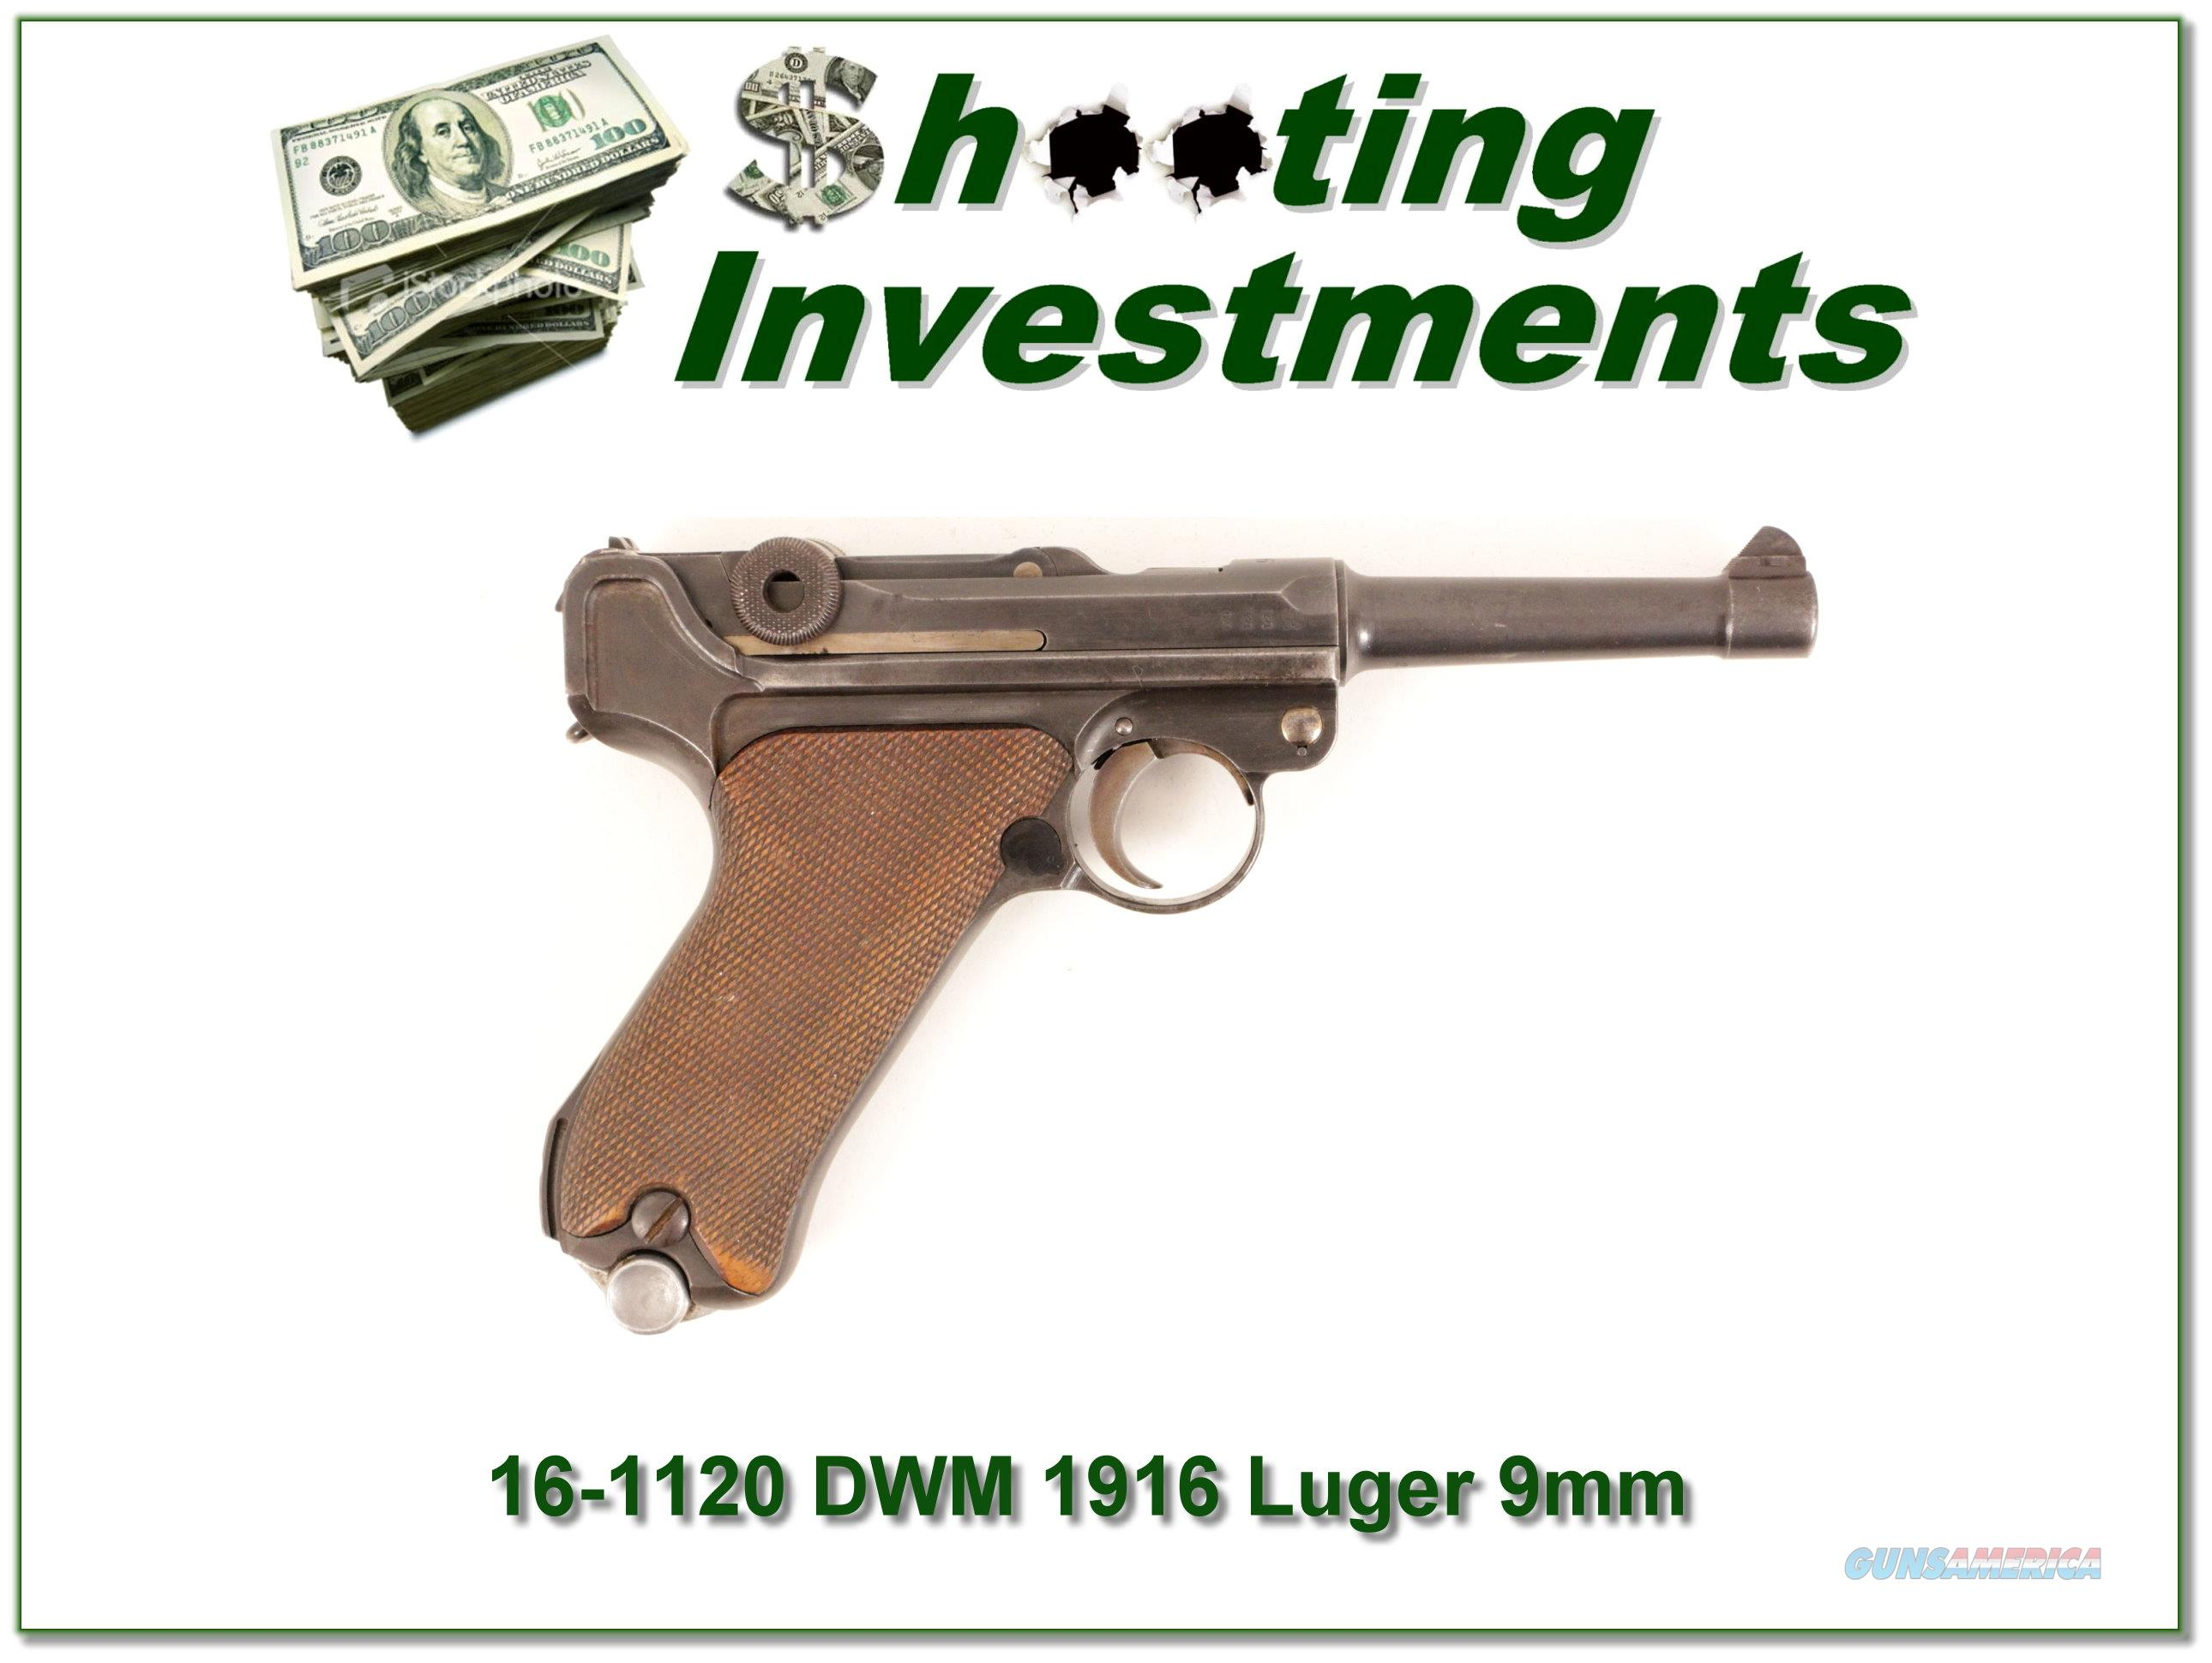 German DWM Luger made in 1916 9mm Exc cond